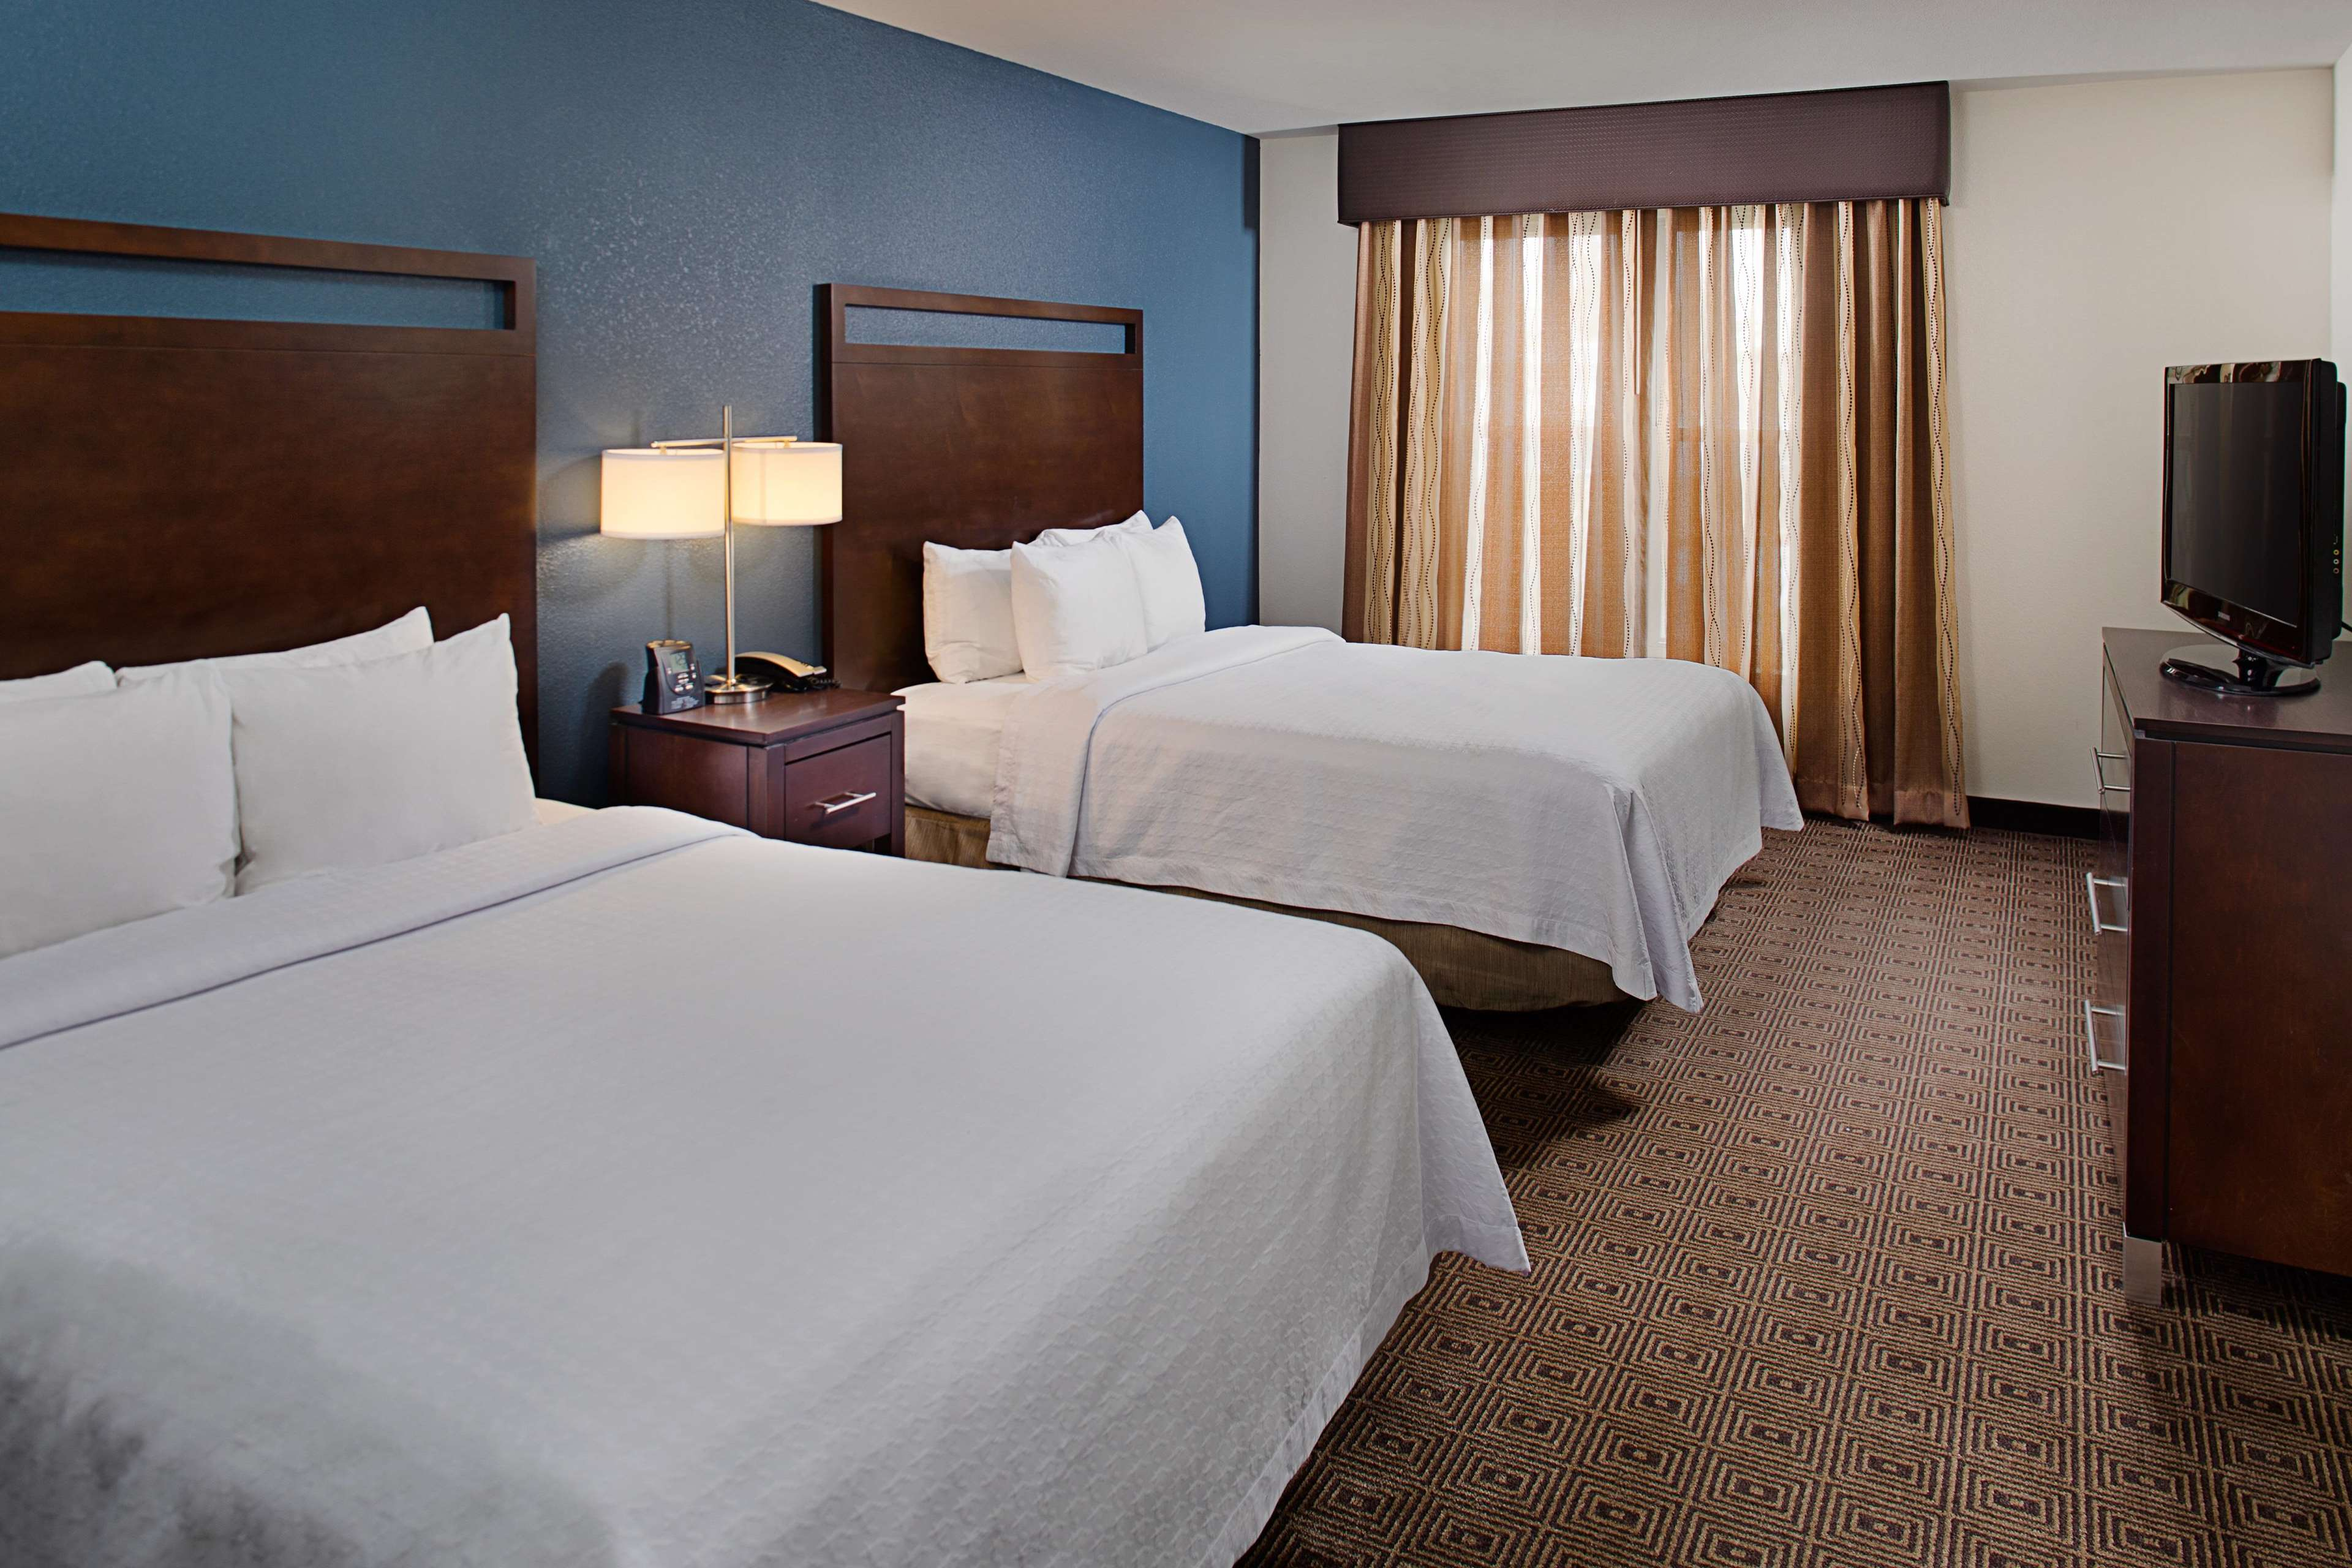 Homewood Suites by Hilton Manchester/Airport image 6